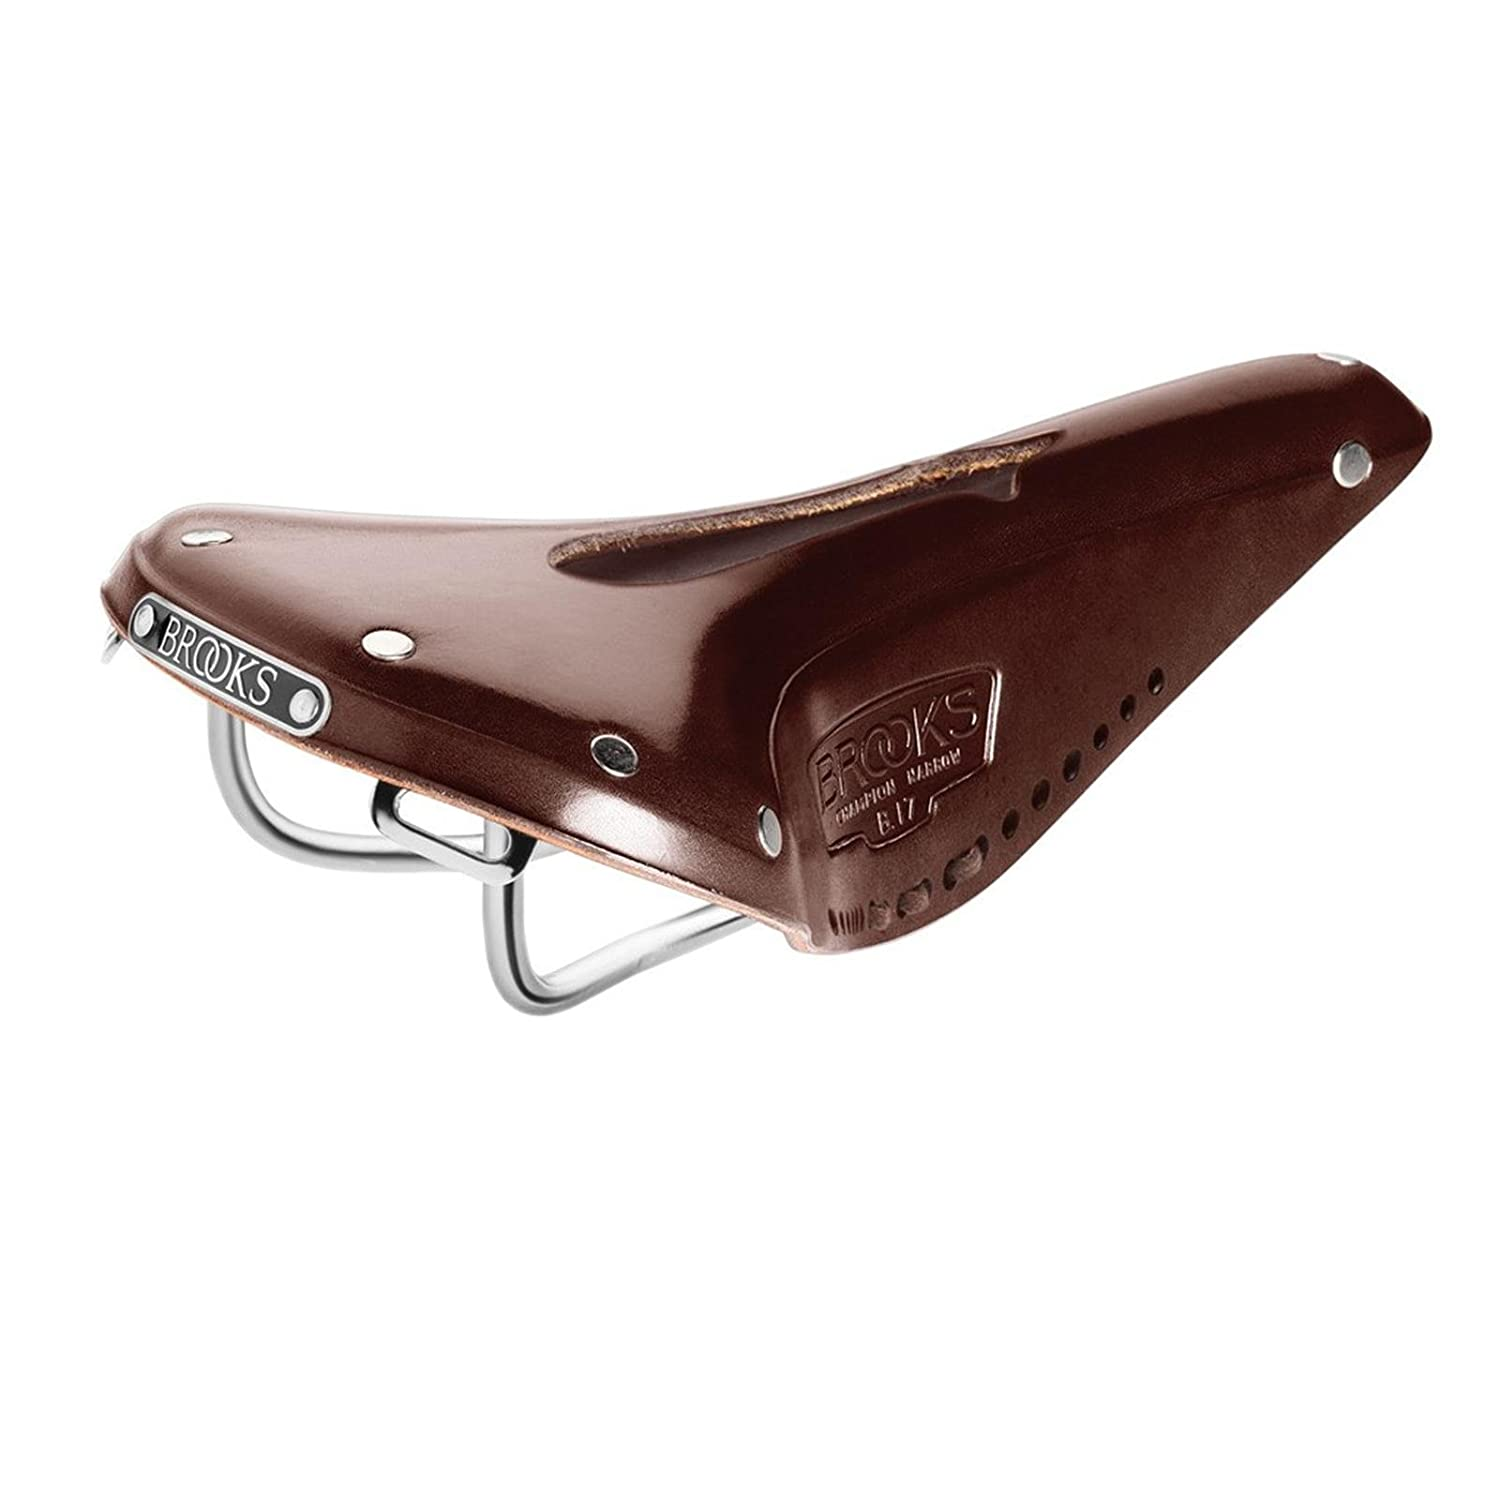 Brooks B17 Imperial Leather Mens Racing Bicycle Seat Touring Bike Saddle